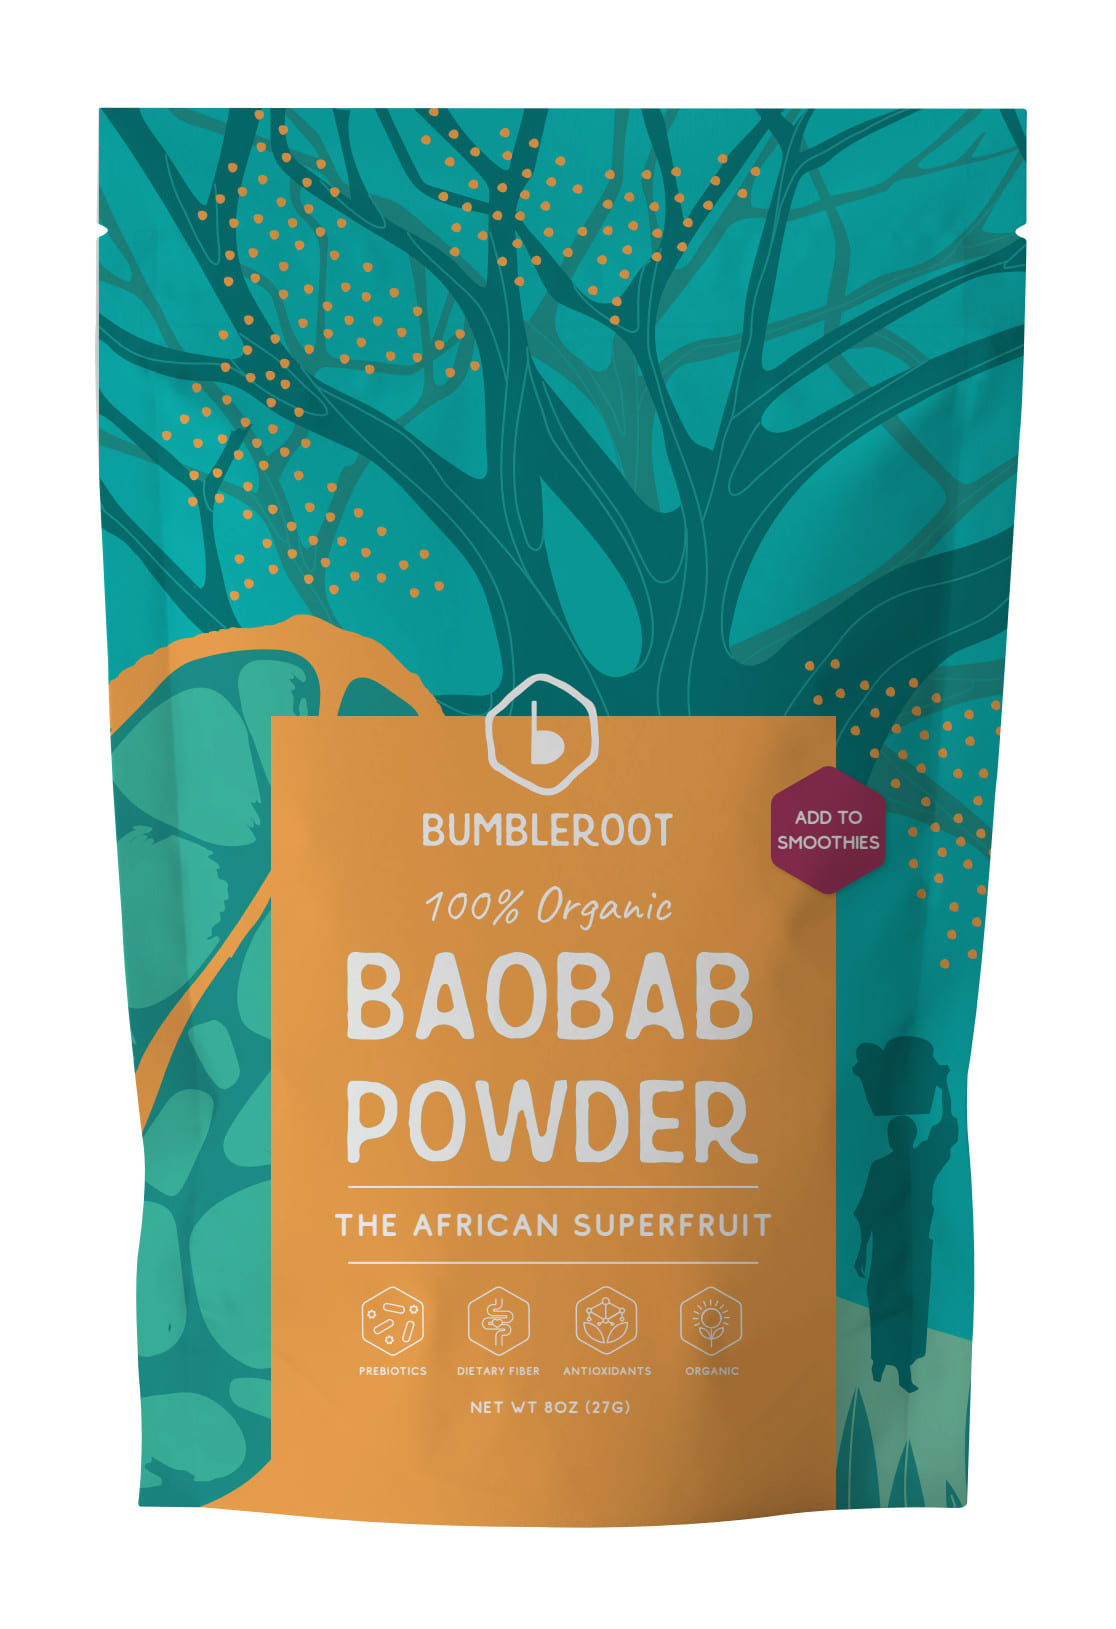 Baobob Powder Retail Packaging